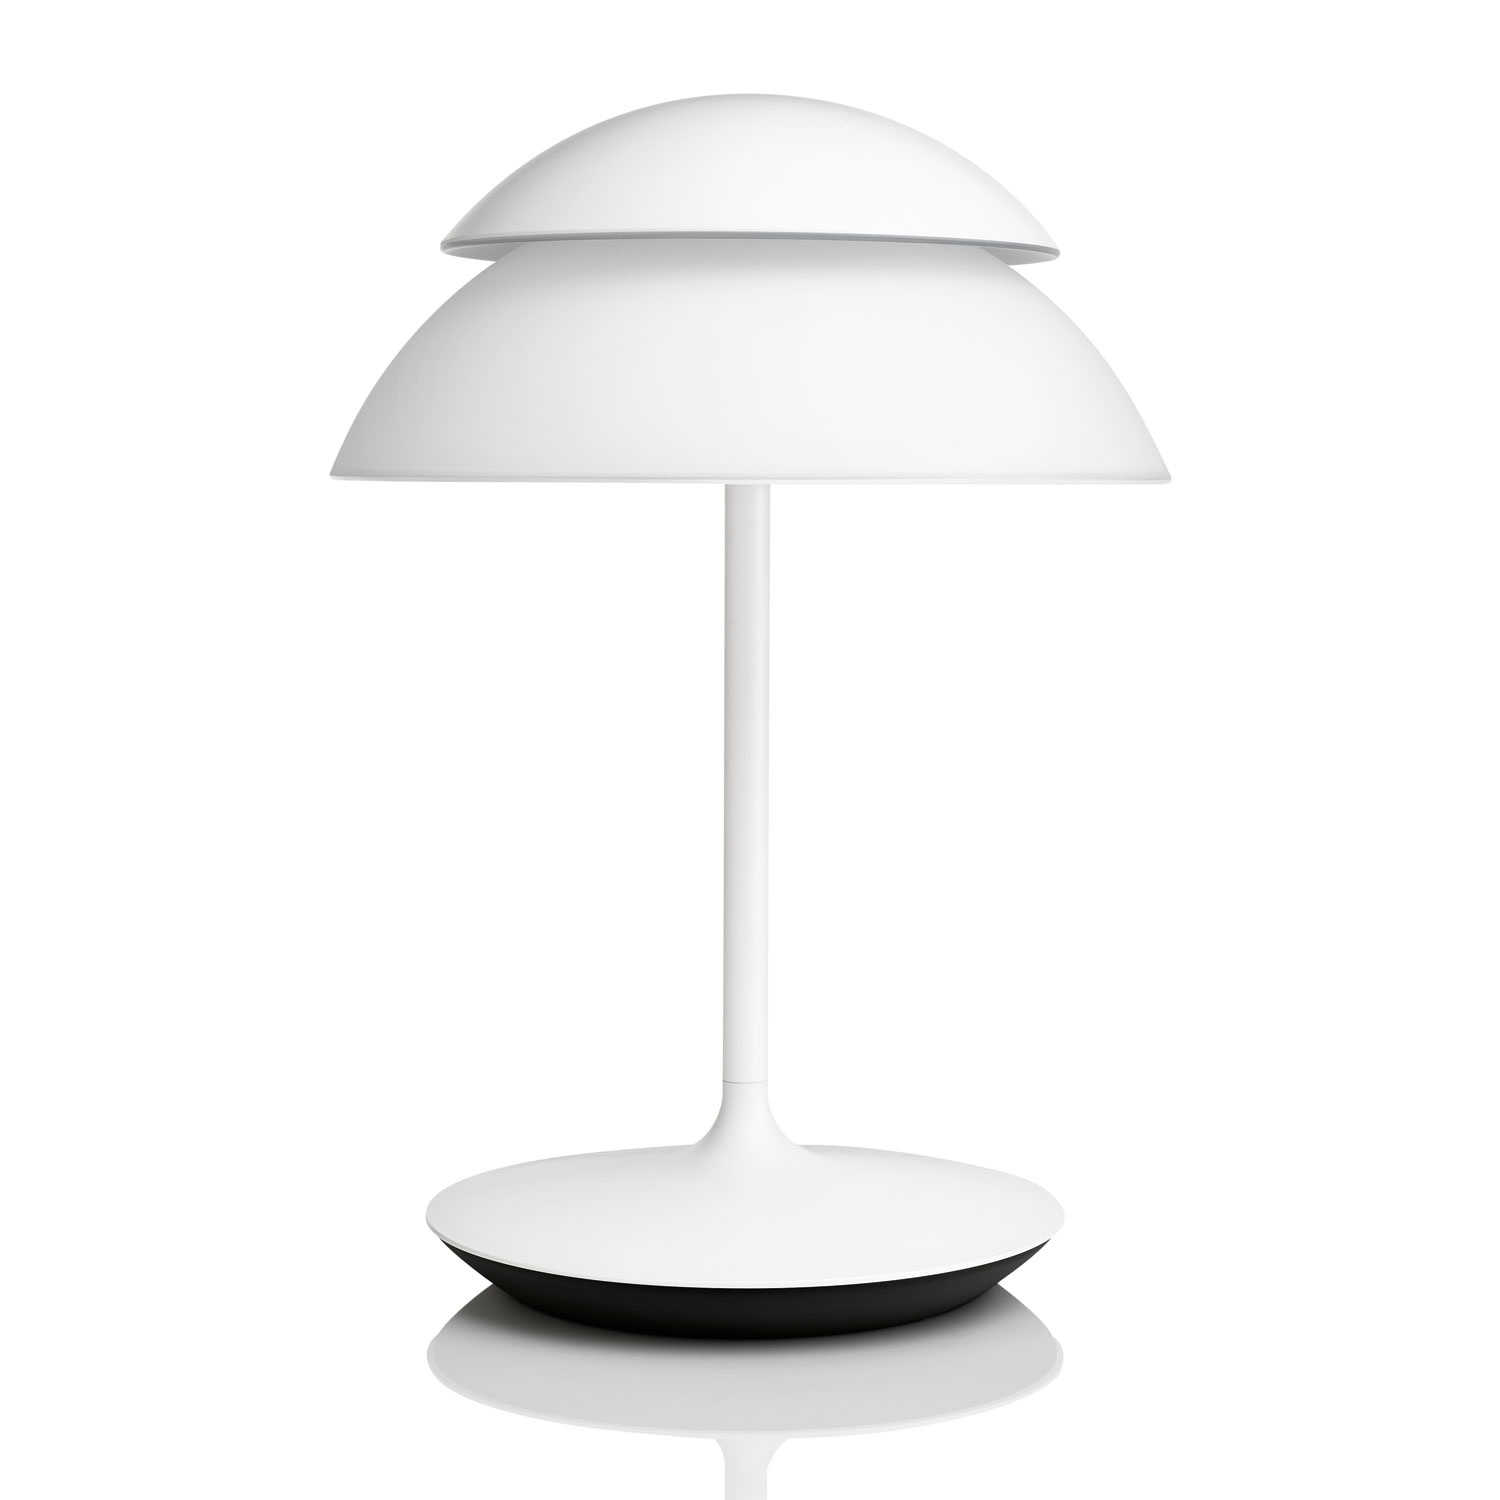 Philips hue beyond lampe poser ampoule connect e - Ampoule connectee philips ...